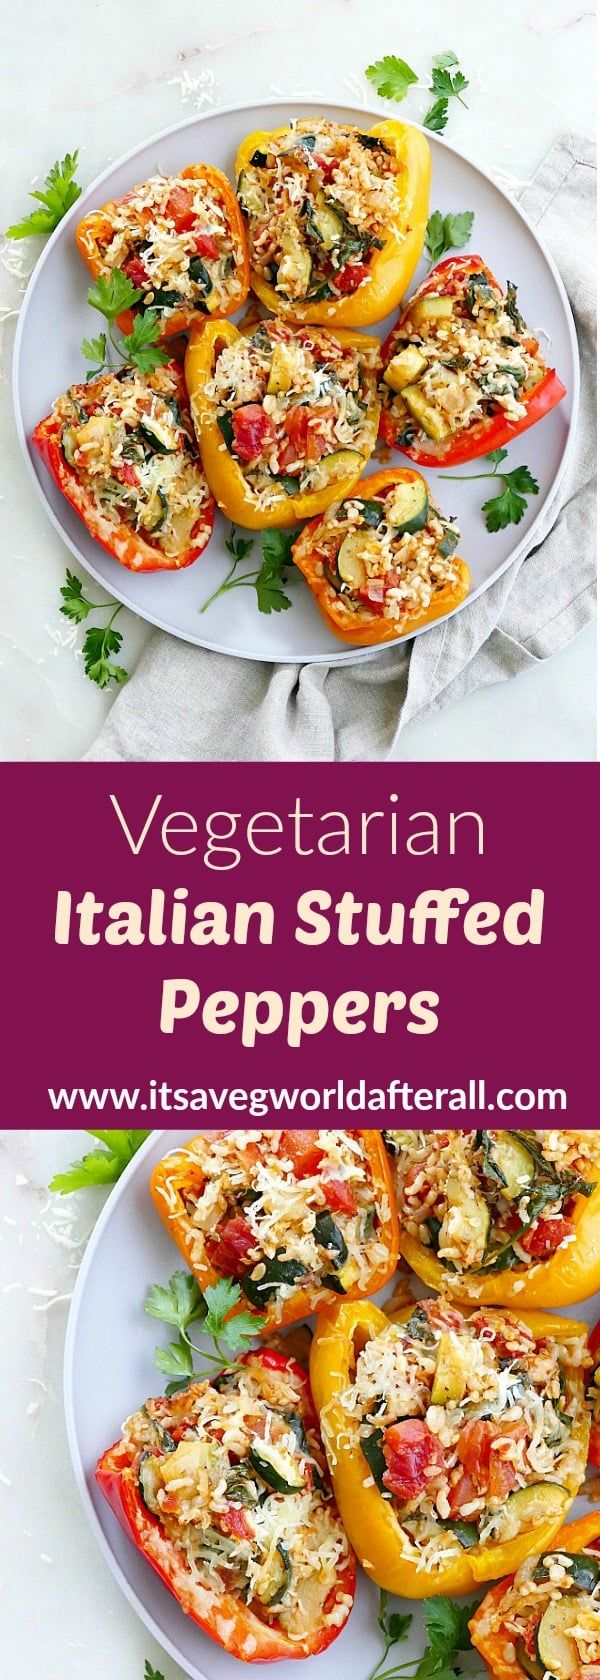 Vegetarian Italian Stuffed Peppers - a healthy stuffed peppers recipe with rice, zucchini, spinach, tomatoes, onion and finished with a crown of mozzarella cheese. #peppers #italian